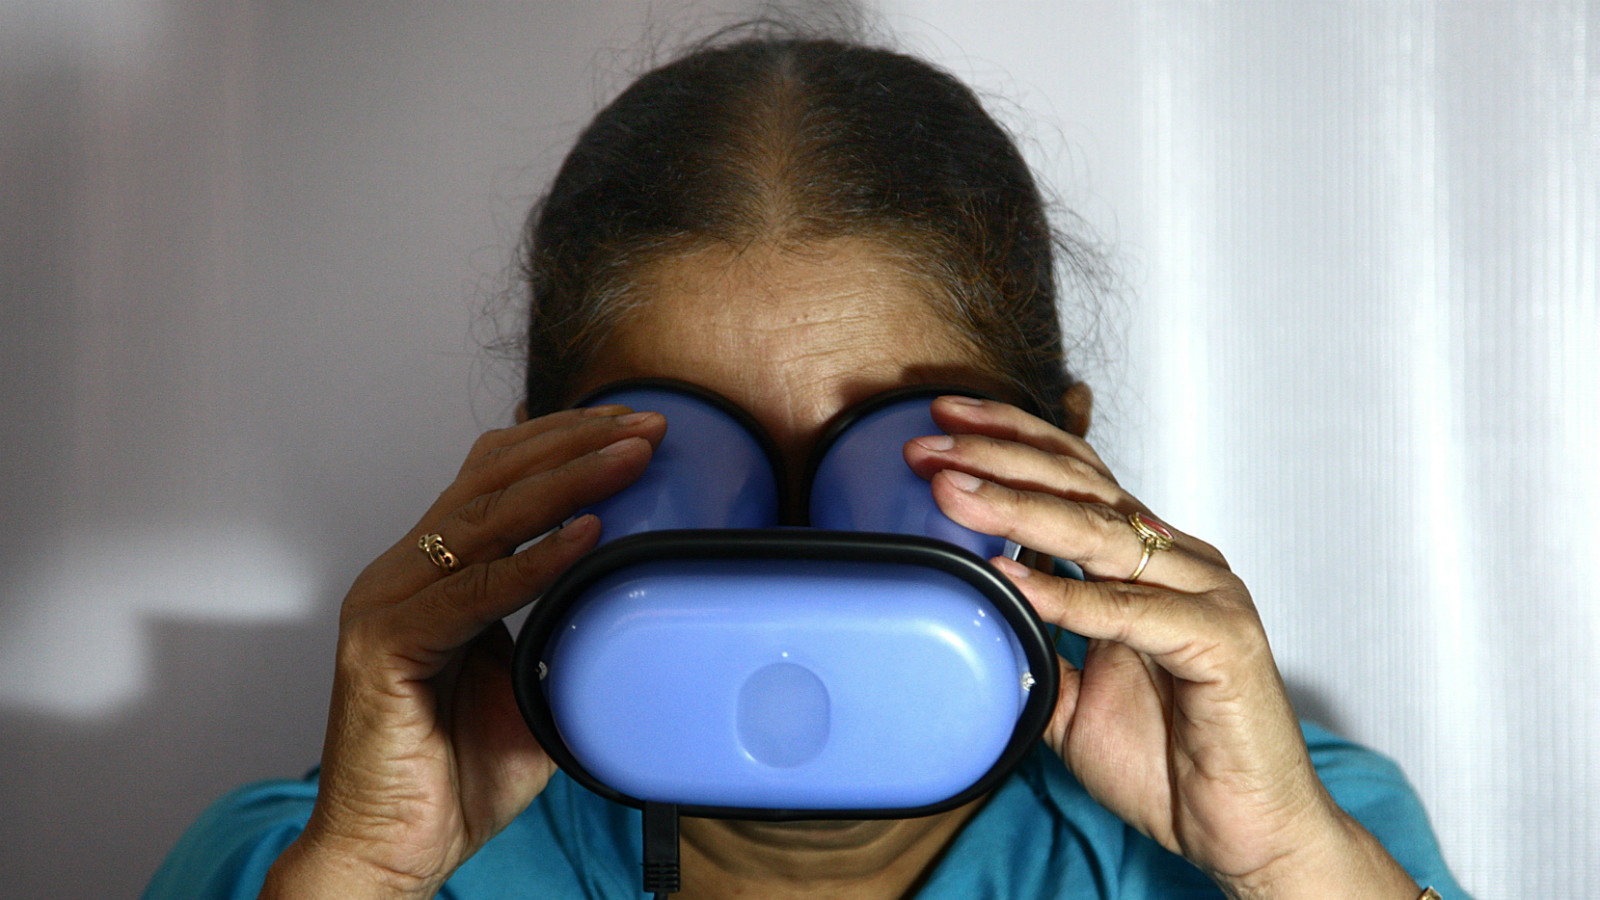 An Indian woman scans her eyes for enrollment of Aadhaar Number/ UID Card in Old Bhopal, Madhya Pradesh, India on 29 July 2011. The Unique Identification Authority of India (UIDAI) is an agency of the Government of India responsible for implementing the envisioned AADHAAR a unique identification project in India. The authority will aim at providing a unique number to all Indians and would provide a database of residents containing very simple data in biometrics. It is believed that Unique National IDs will help address the rigged state elections and widespread embezzlement that affects subsidies and poverty alleviation programs and addressing illegal immigration into India and terrorist threats is another goal of the program. Aadhar card to become the single source of identity verification card in India for many Sources. It provides the government with accirate and enough information on any individual residents of India. It also provides online authentication services for agencies or companies those who wish to validate an individual identity, news reports said. Aadhaar is a 12-digit unique number which the Unique Identification Authority of India (UIDAI) will issue for all residents in India.